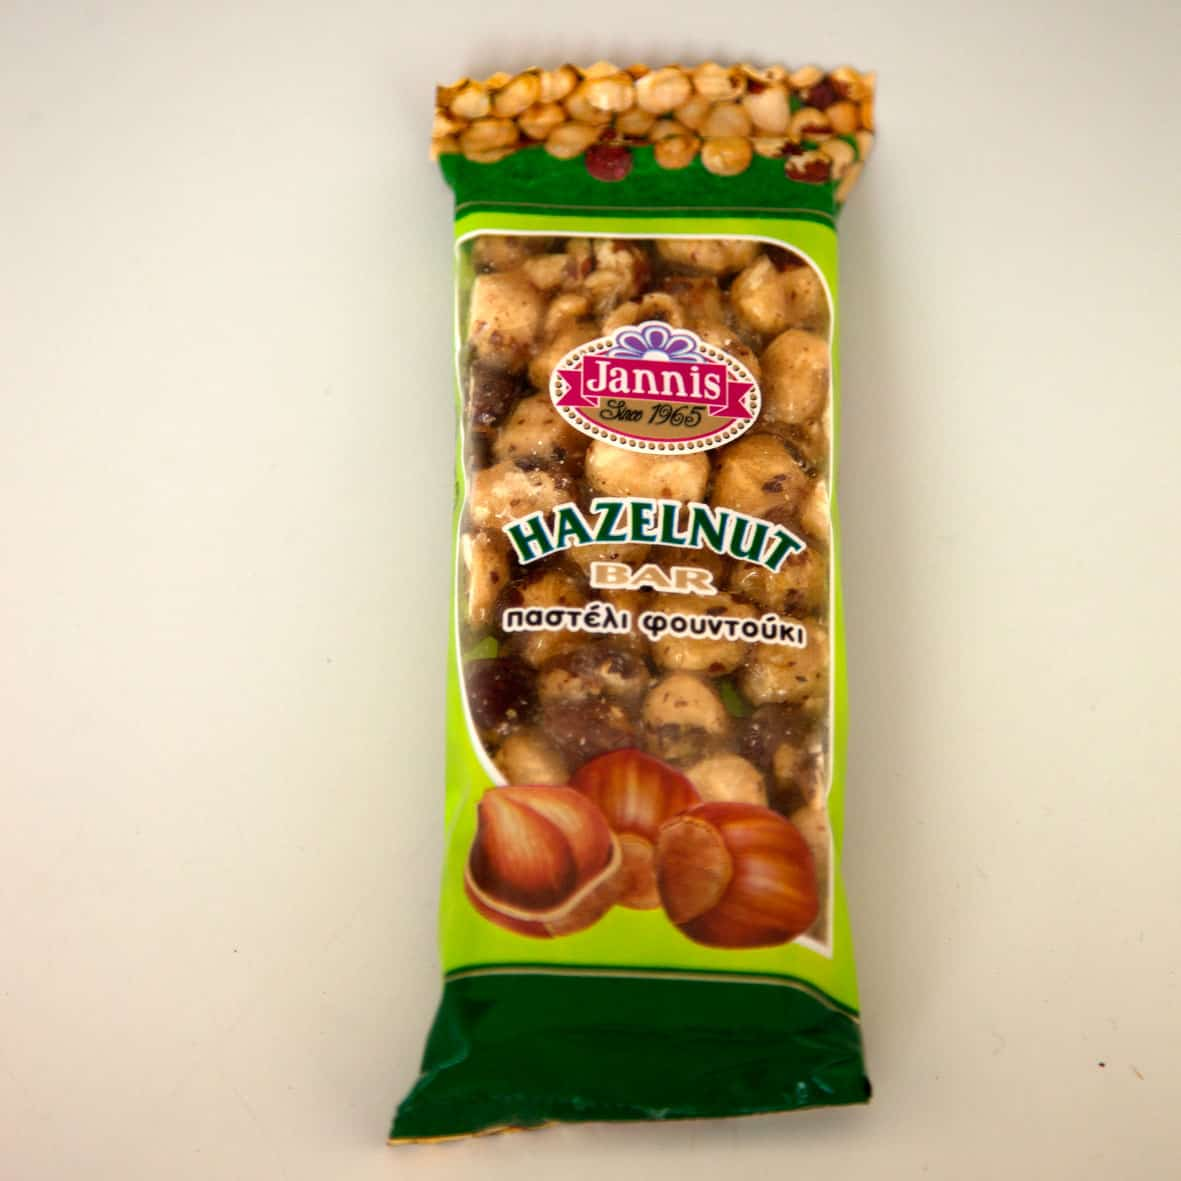 Jannis hazelnut bar 40g